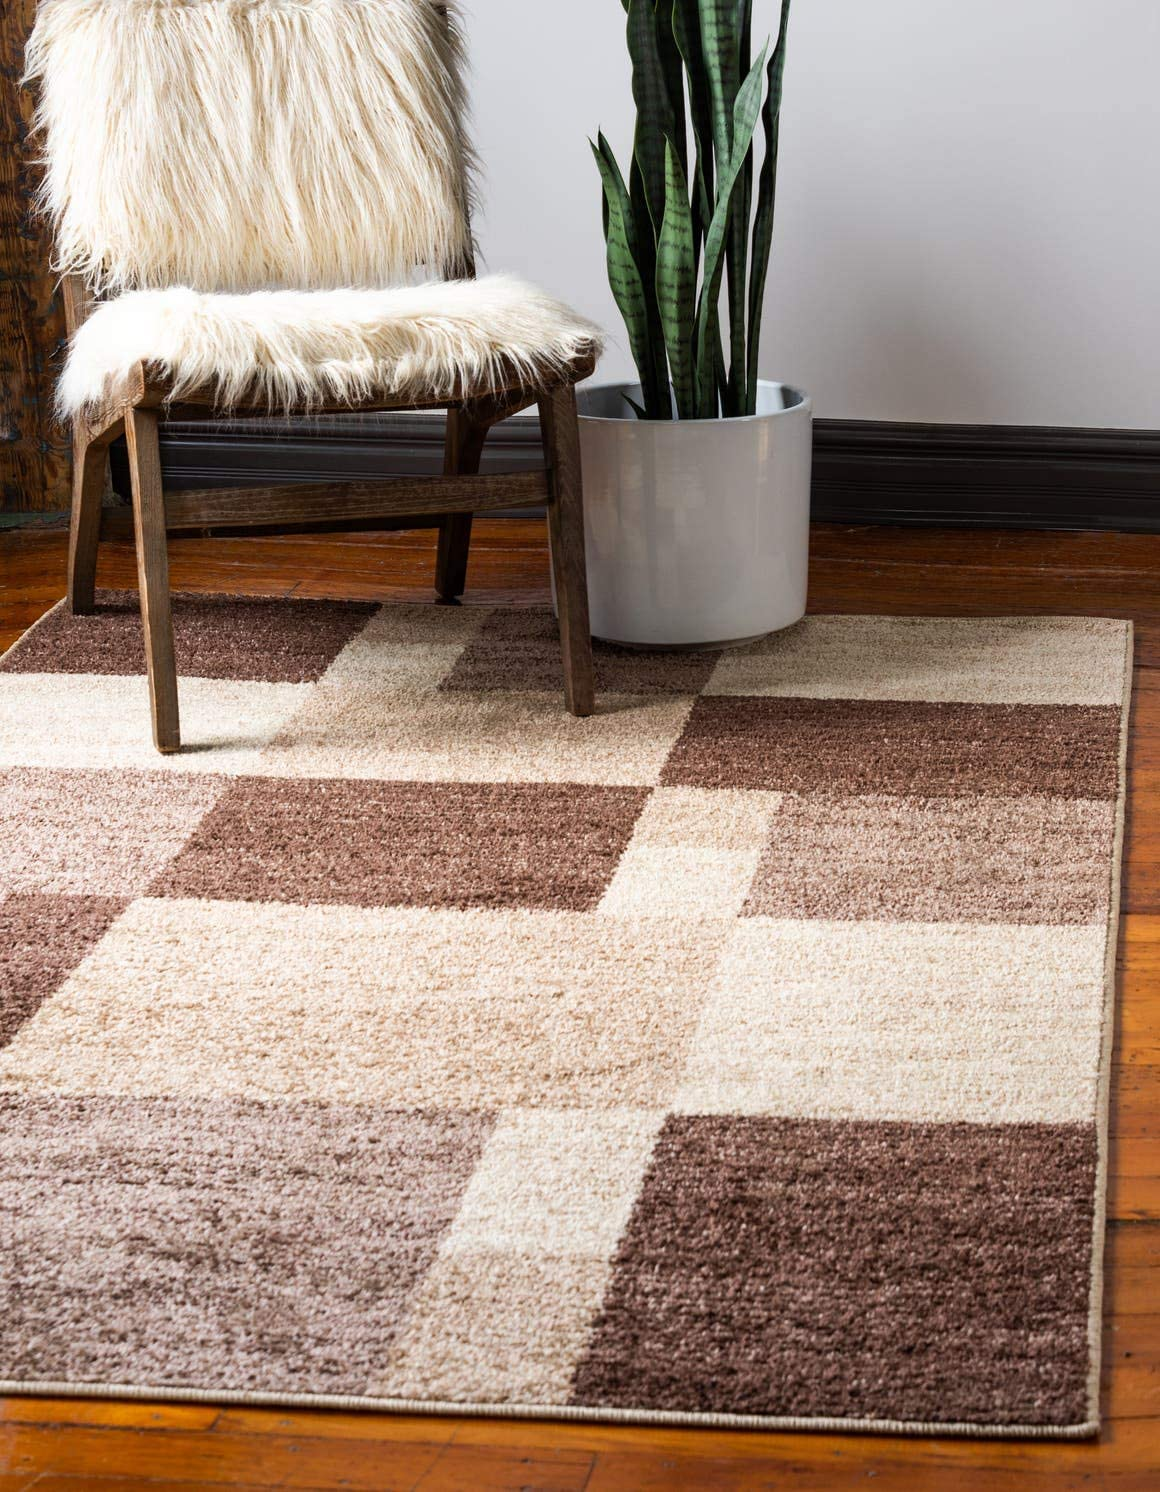 Unique Loom Autumn Collection Abstract Checkered Casual Warm Toned Light Brown Area Rug 2 0 x 3 0